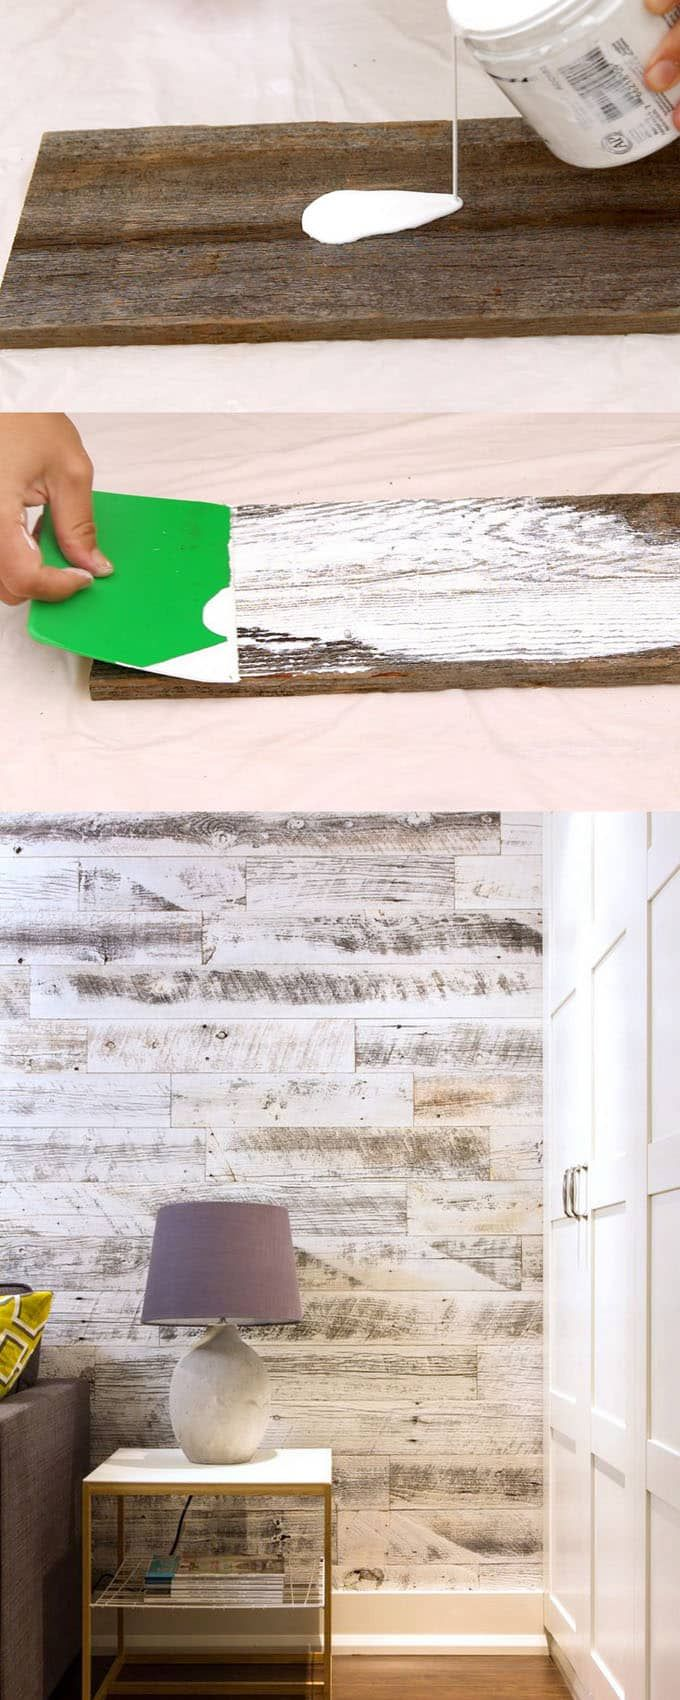 Ultimate guide + video tutorials on how to whitewash wood & create beautiful whitewashed floors, walls and furniture using pine, pallet or reclaimed wood. | apieceofrainbow.com #shiplap #farmhouse #farmhousestyle #farmhousedecor #painting #paintedfurniture #shabbychic #vintage #rustic #rusticdecor #wood #pallets #chalkpaint #homedecor #diy #diyhomedecor #livingroom #apieceofrainbow #wood #woodworking